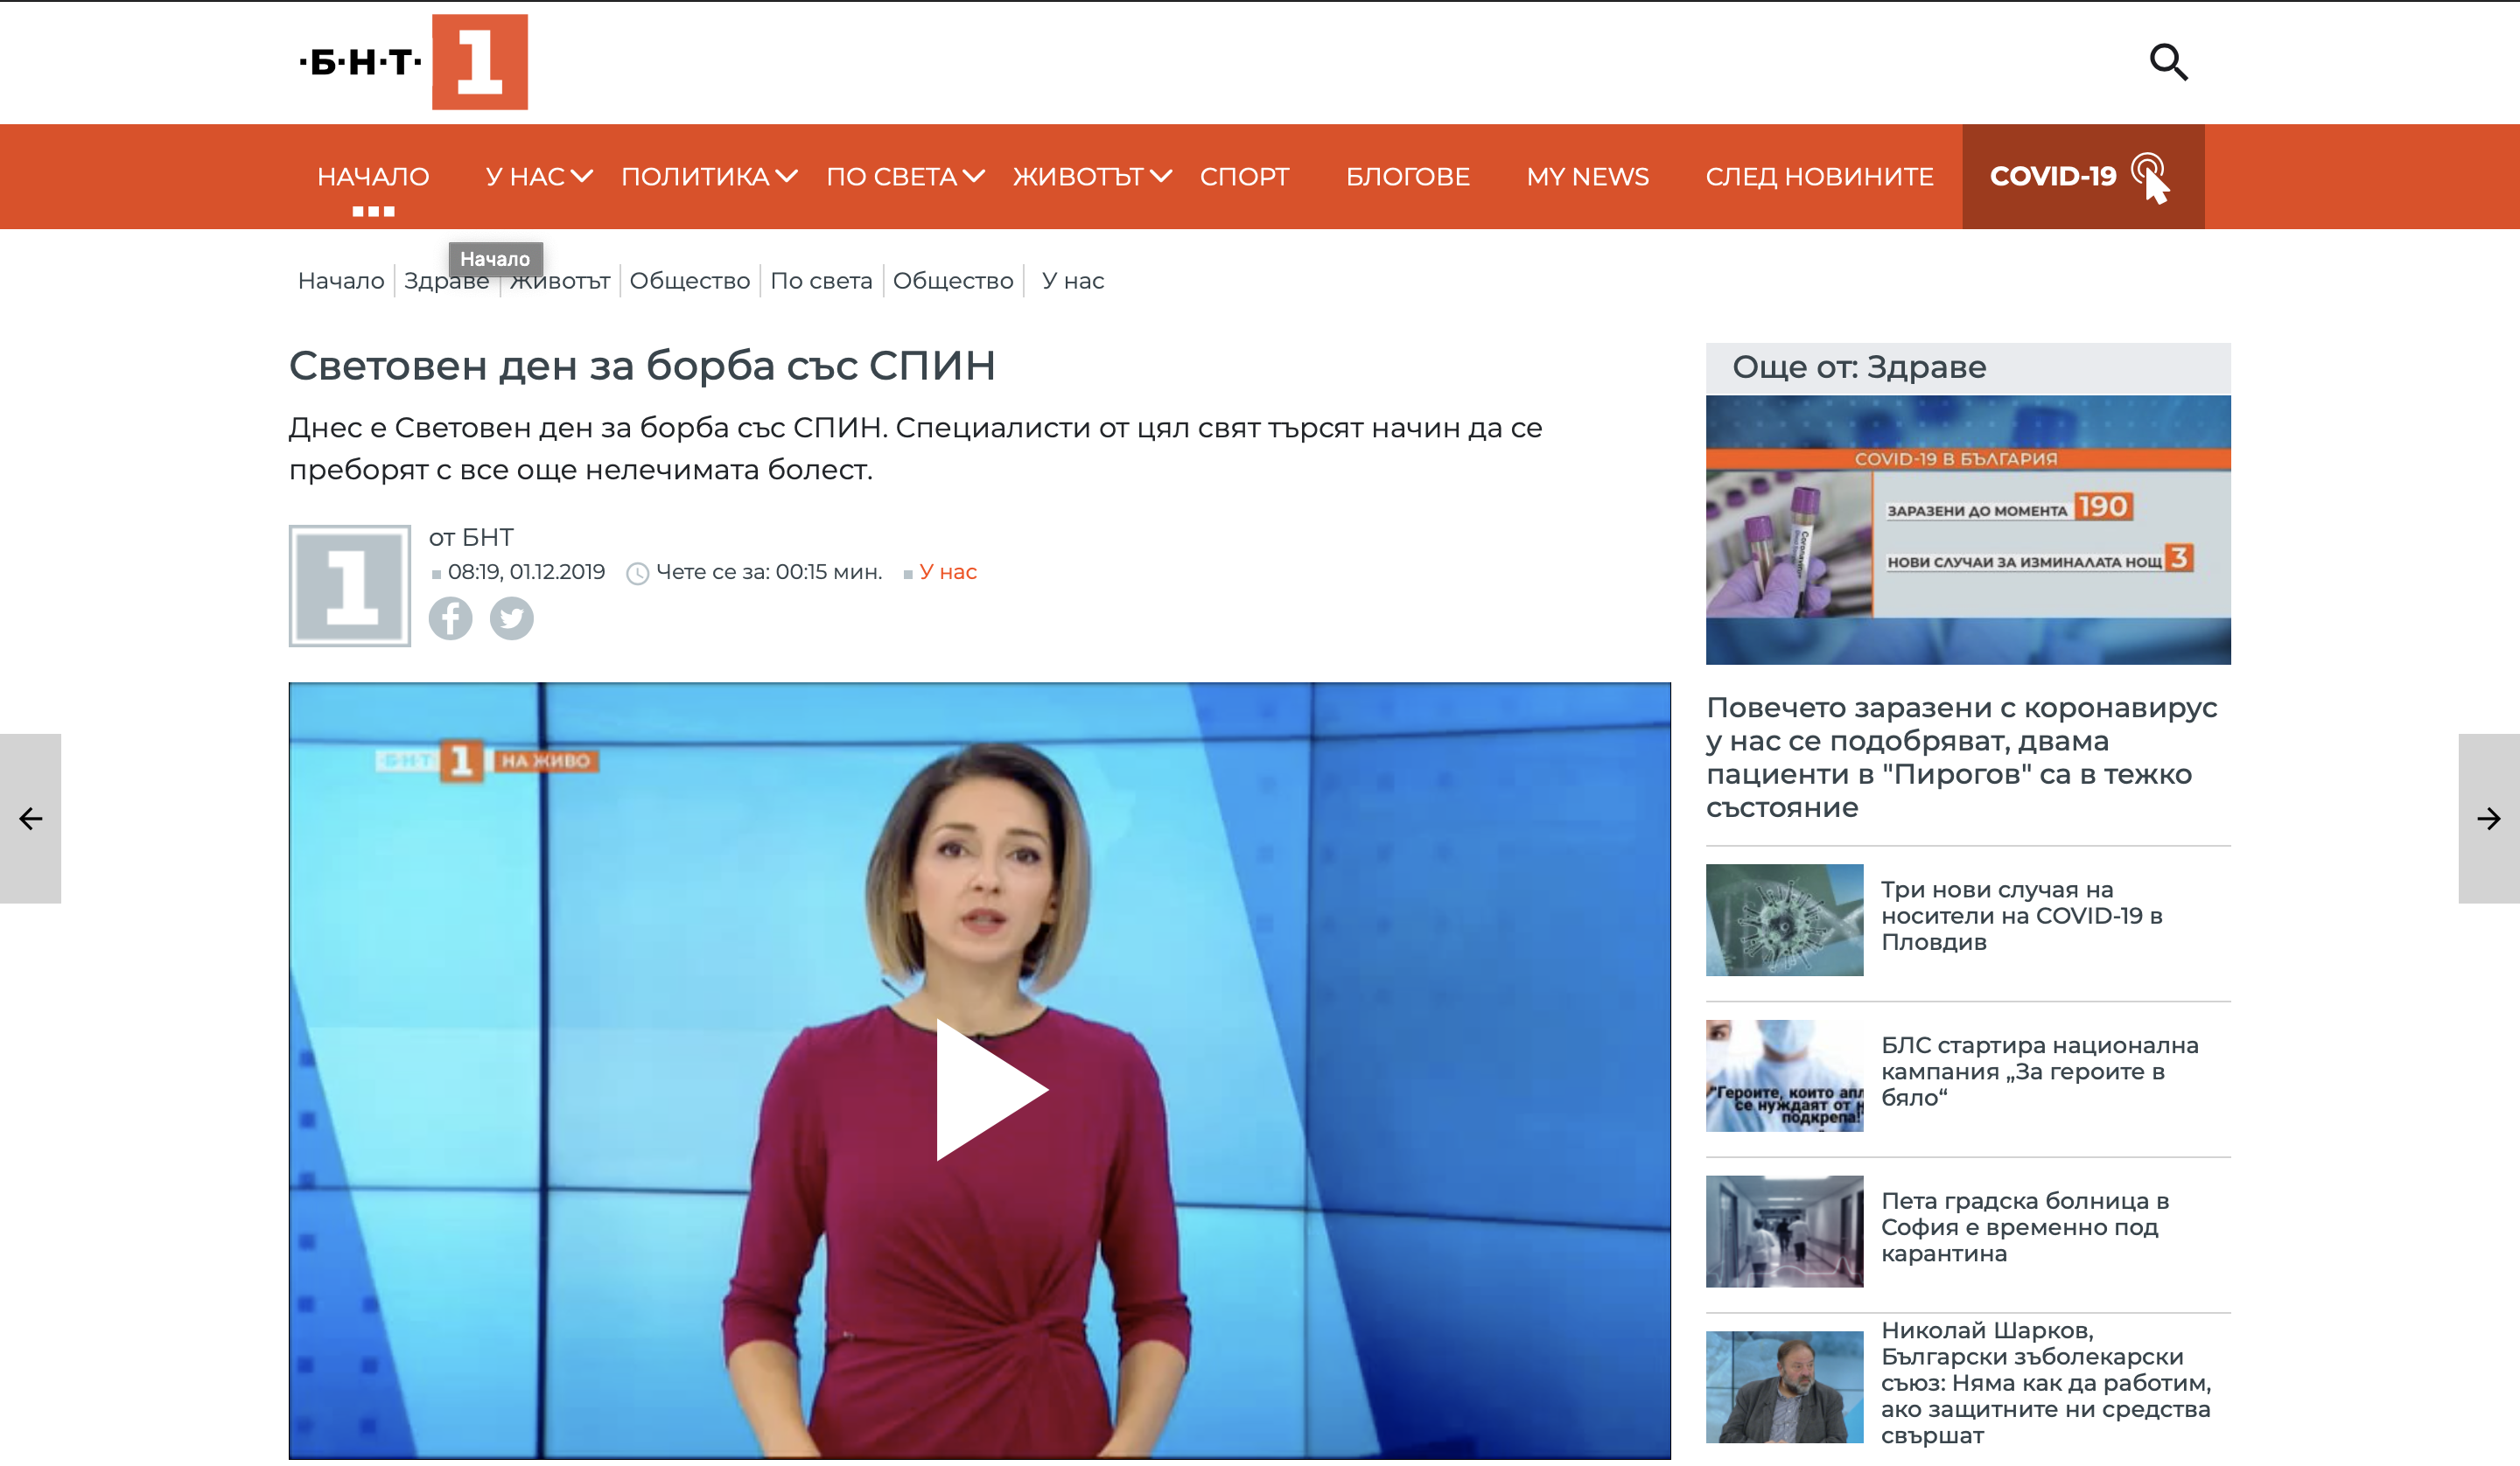 """#endHIVbg: Communities Make the Difference"" Video Campaign Media Coverage"